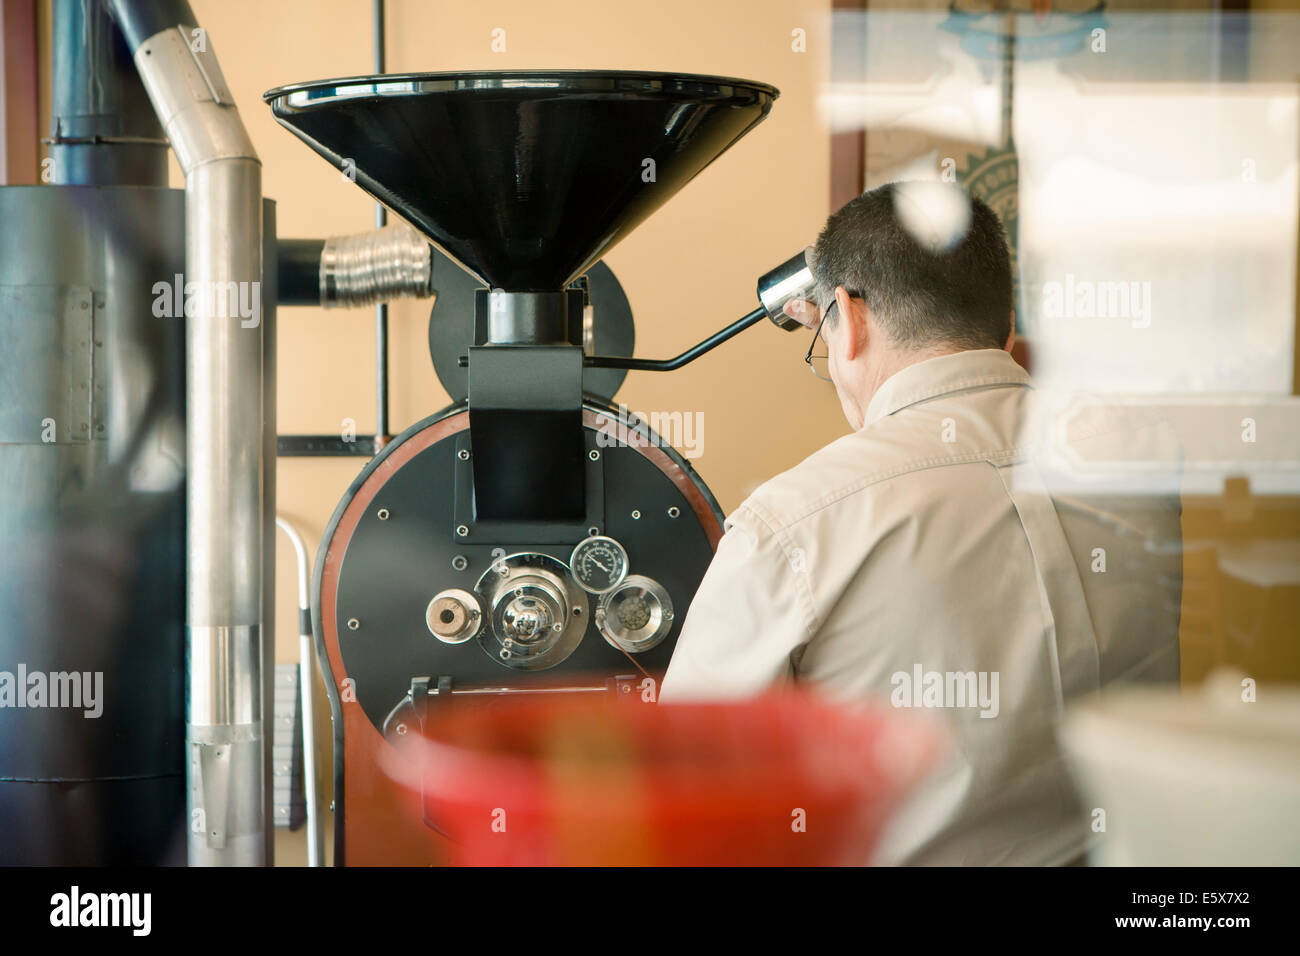 Rear view of mature man using coffee roasting machine in cafe - Stock Image